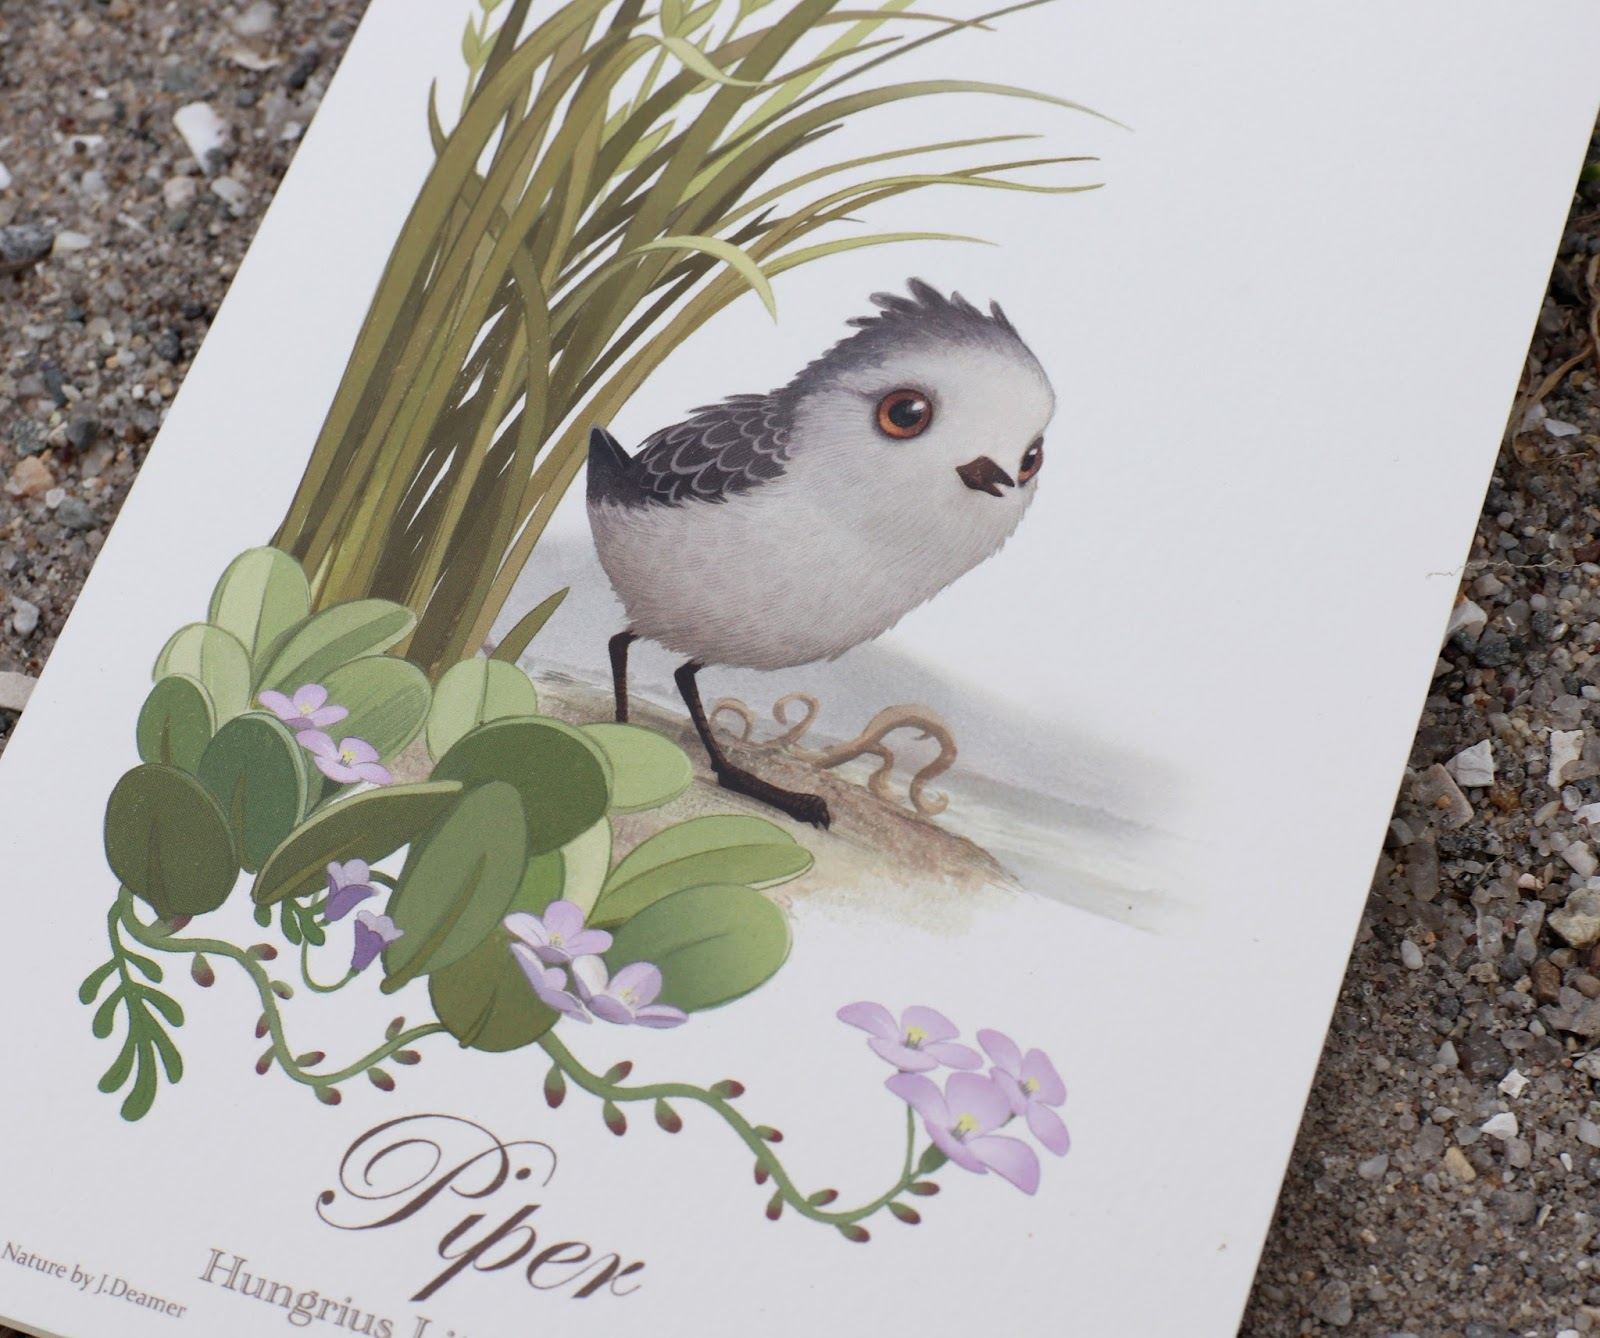 Piper Pixar Studio Store Greeting Card Art by Jason Deamer